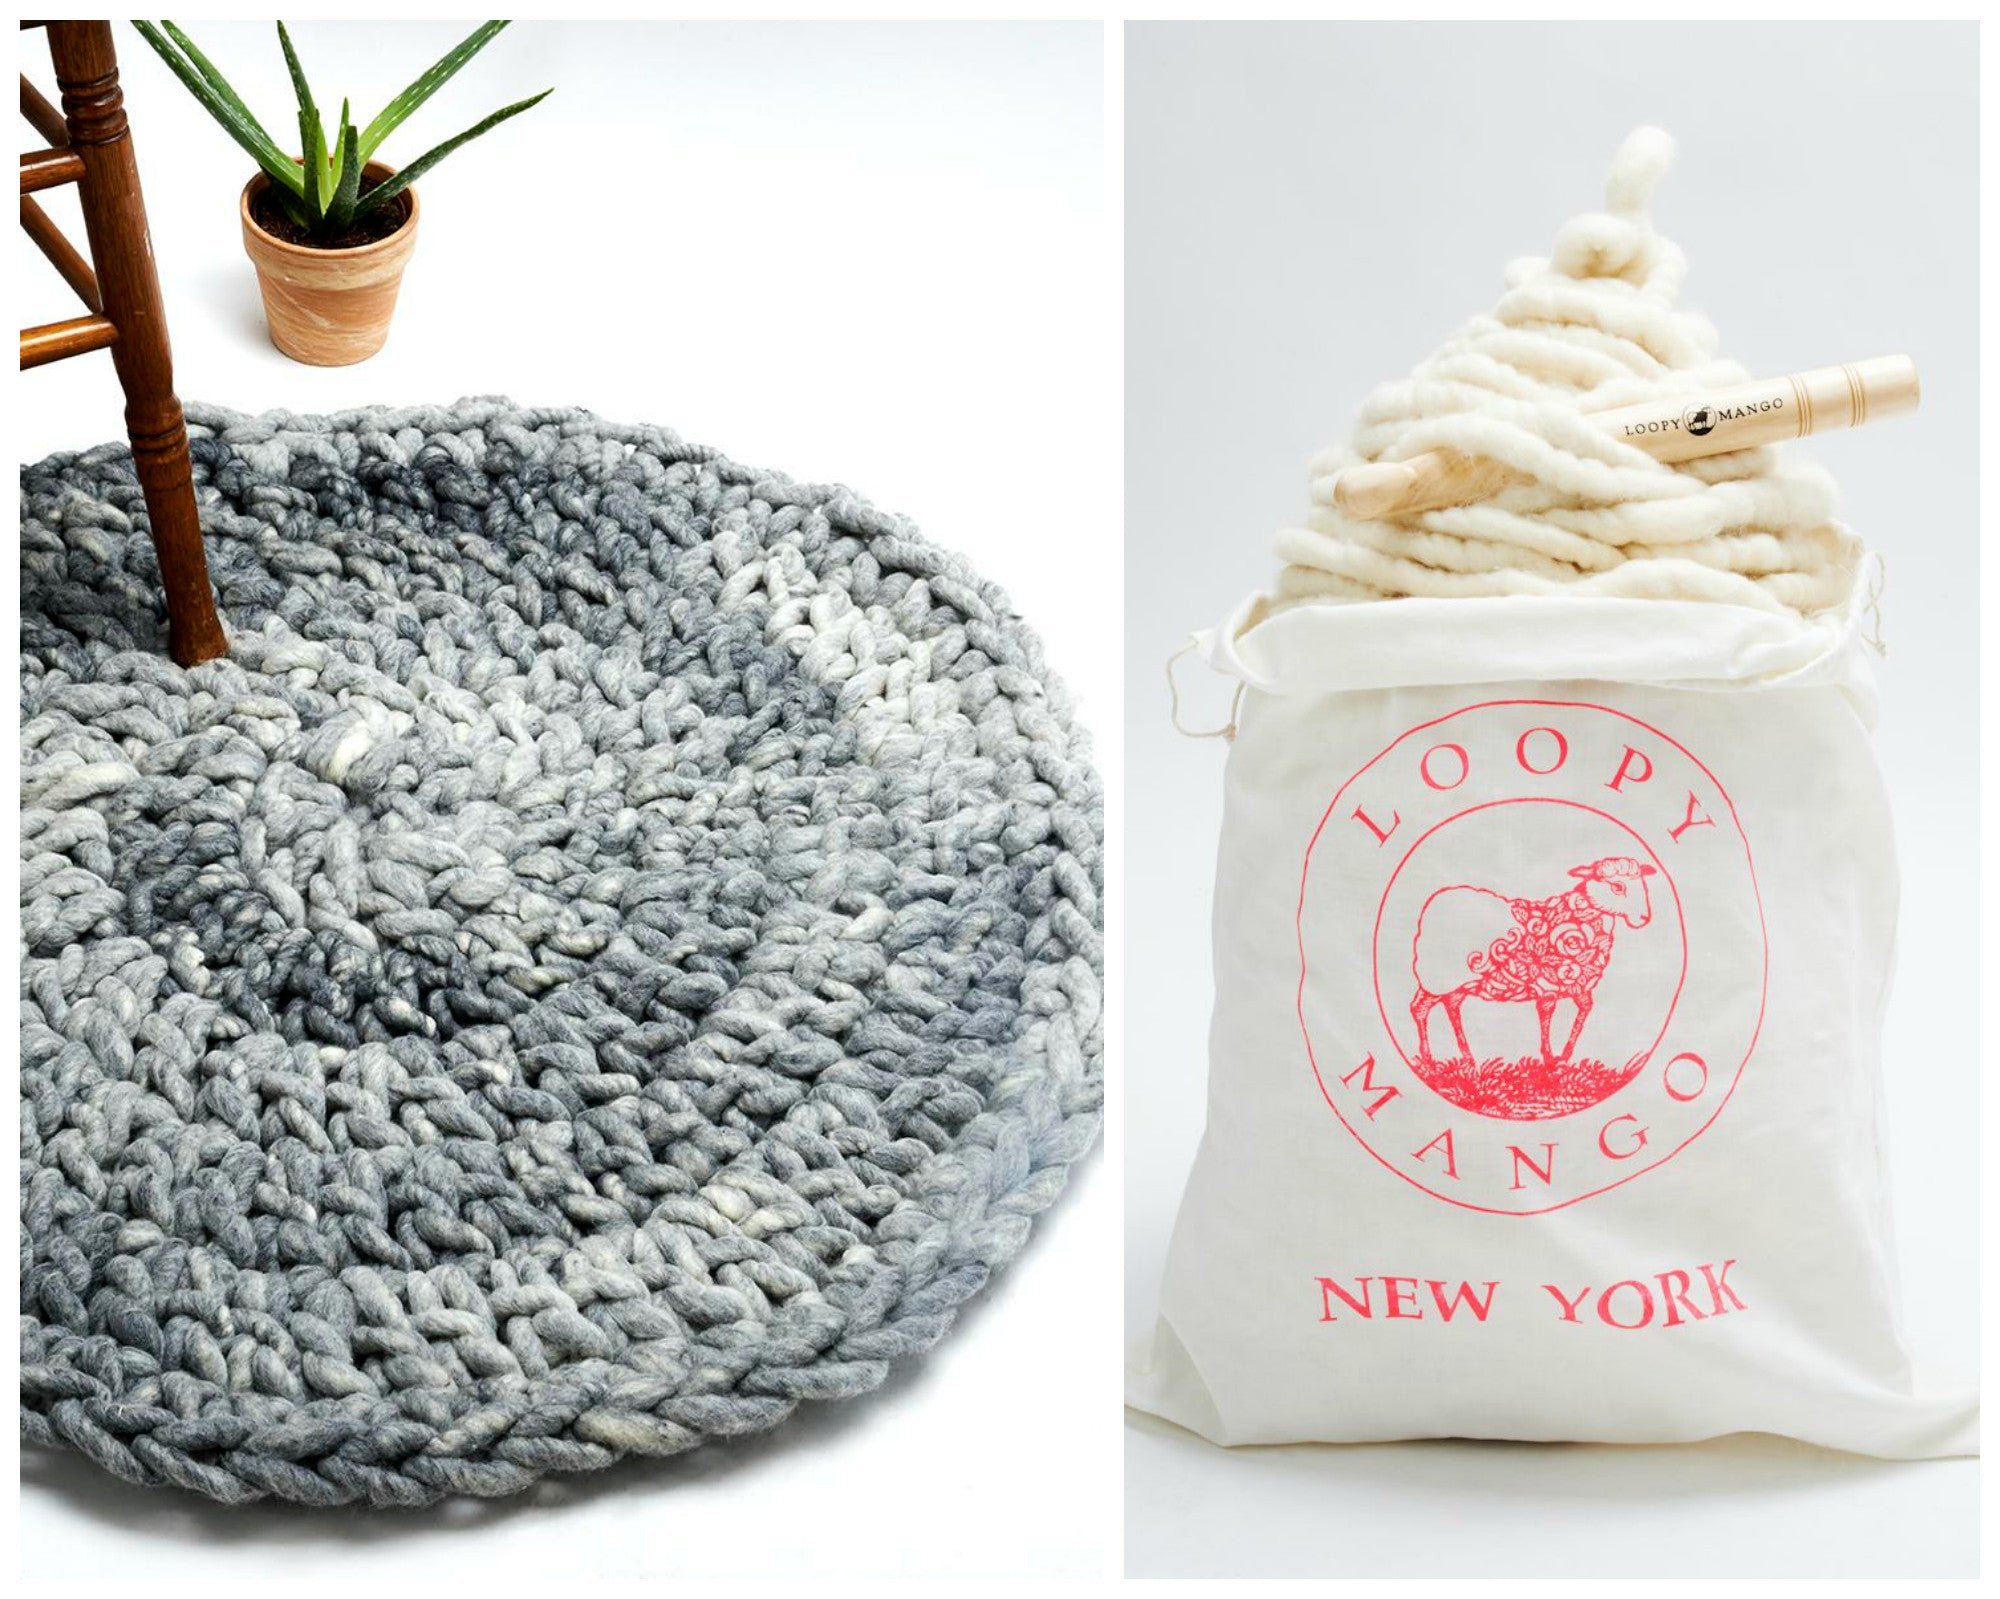 Crocheted Round Rug Class